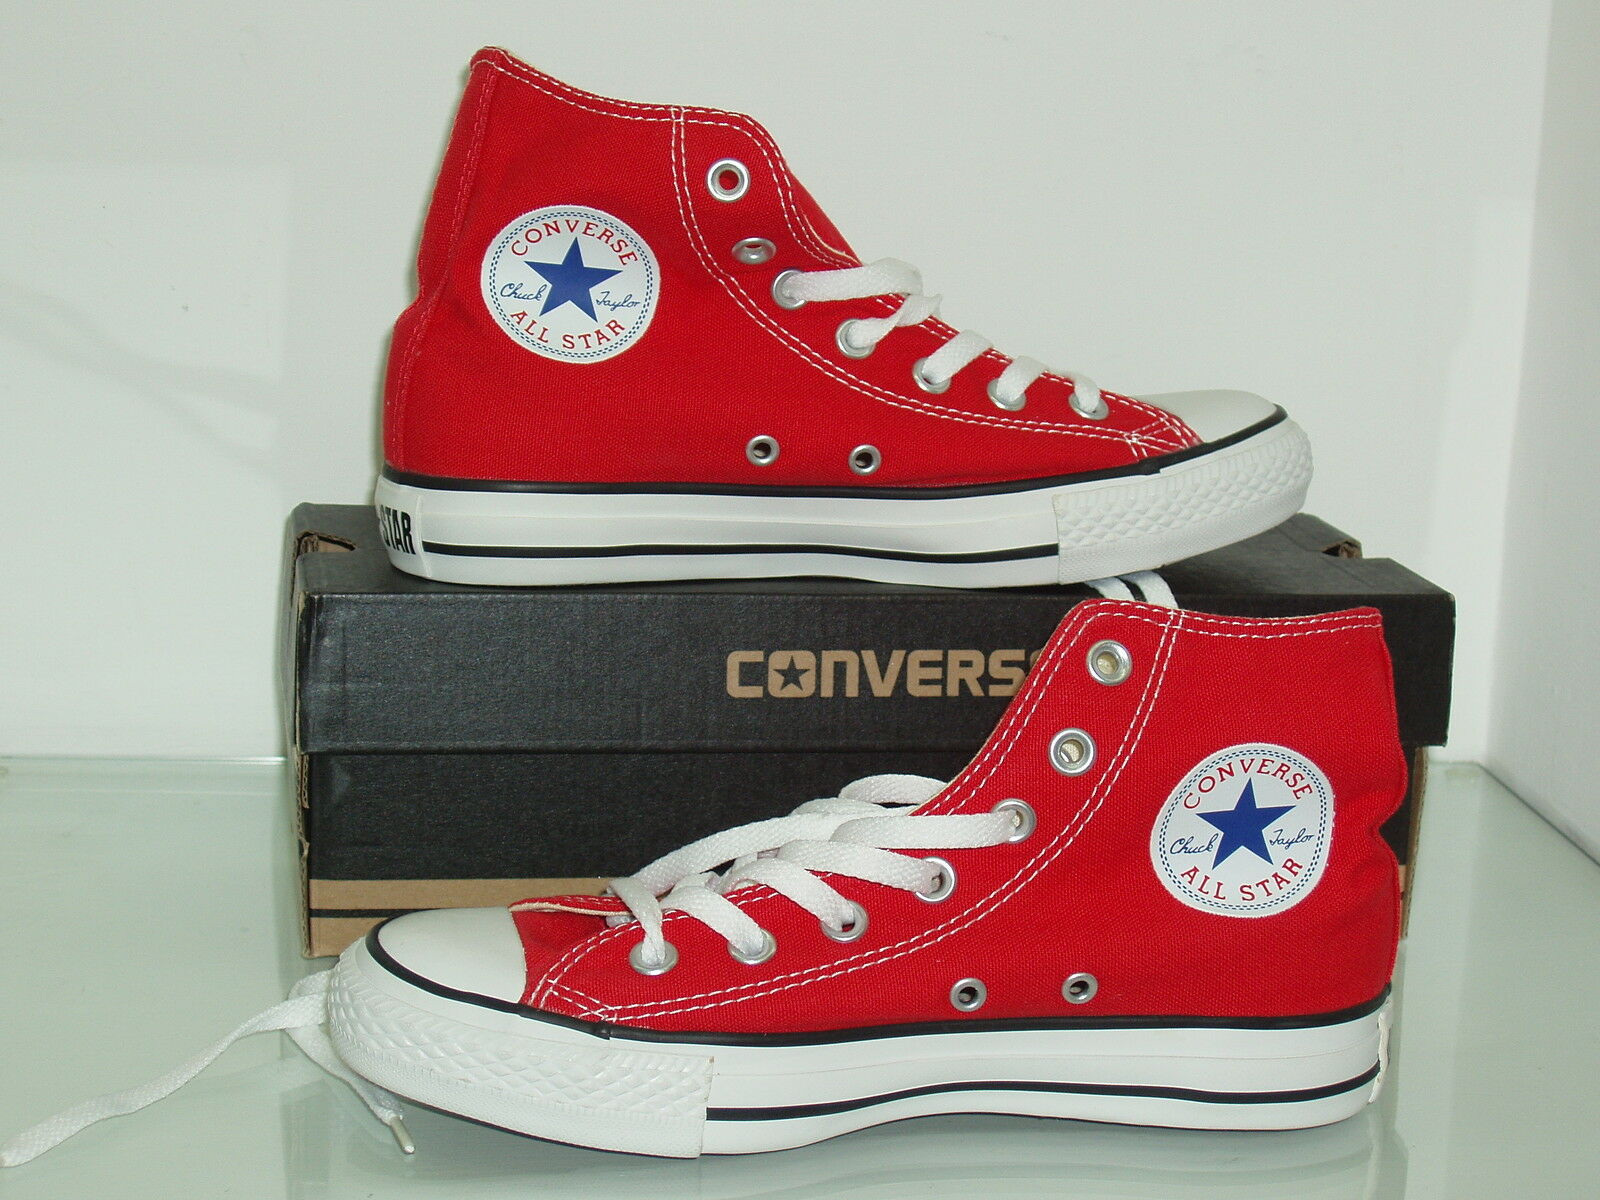 Scarpe converse all - star HI  uomo - all donna  rosso red 8ccb1f